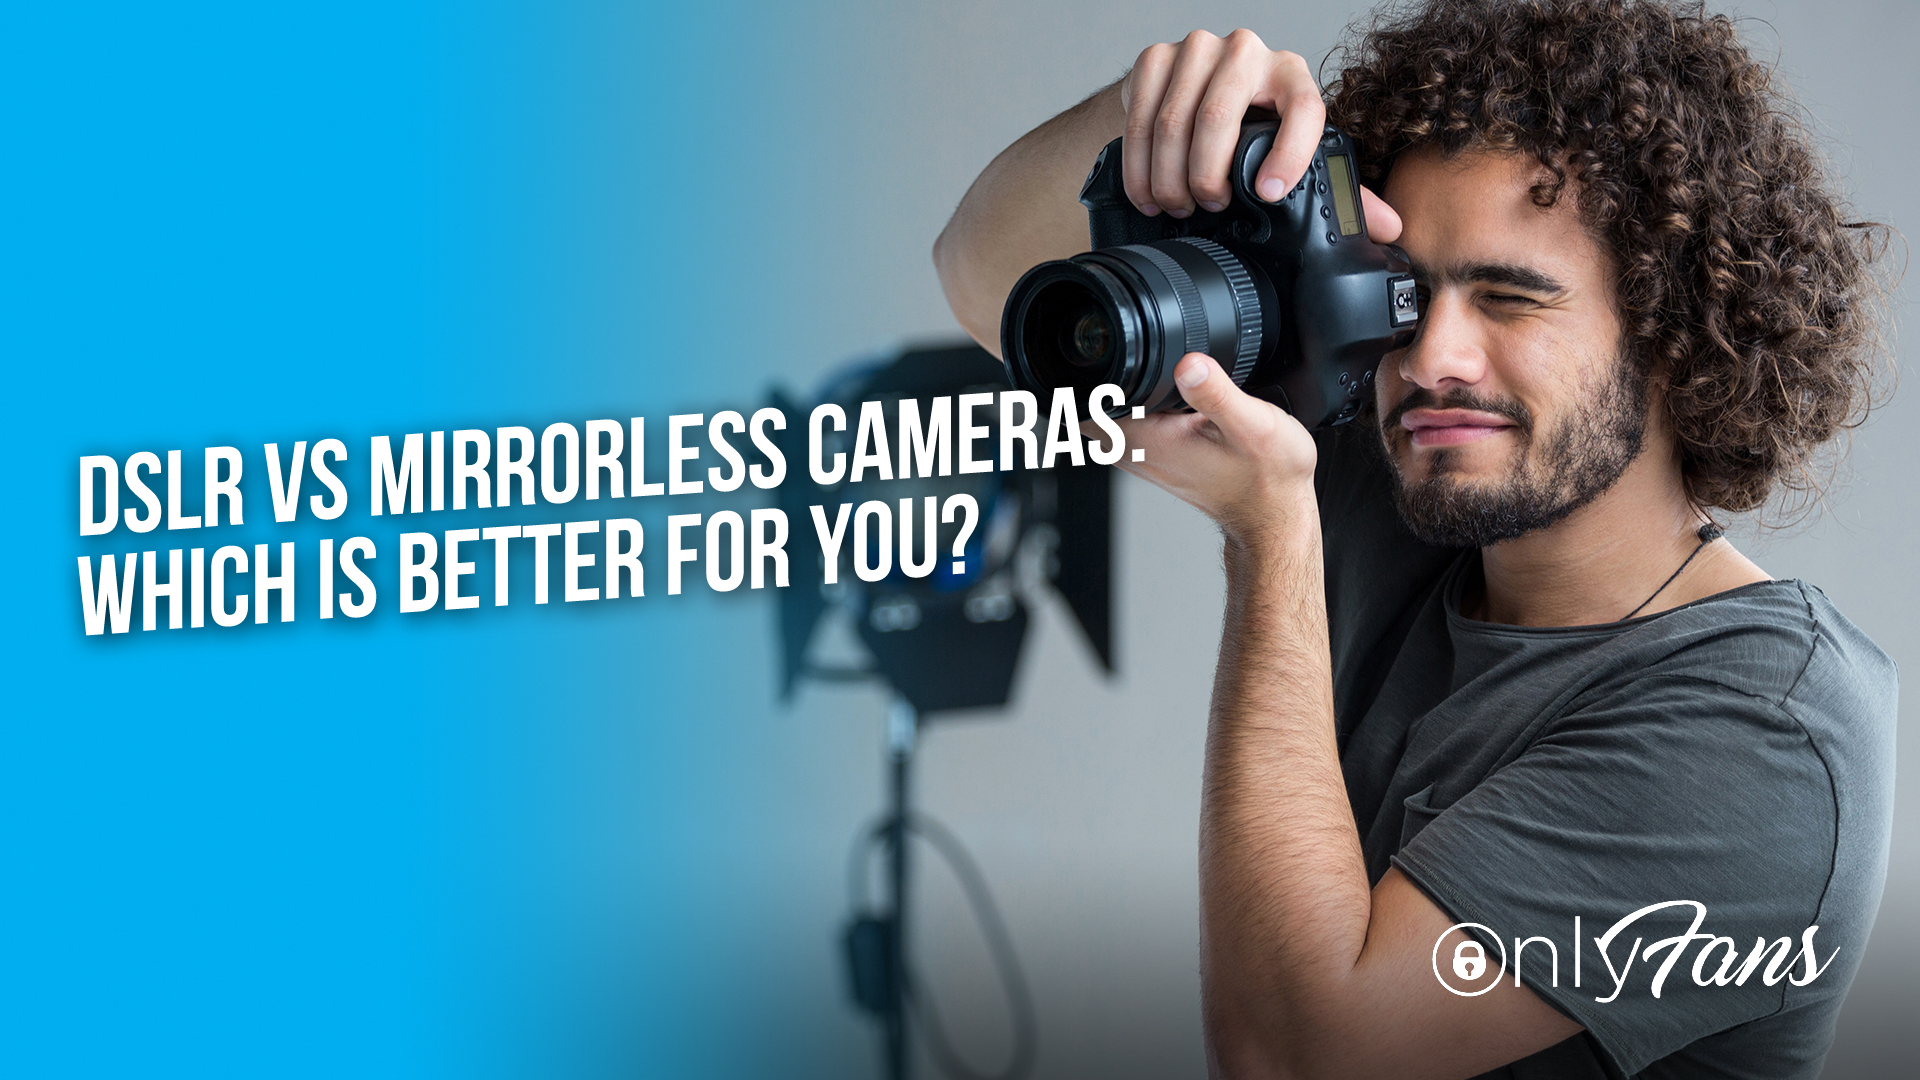 DSLR VS Mirrorless Cameras: Which is better for you?